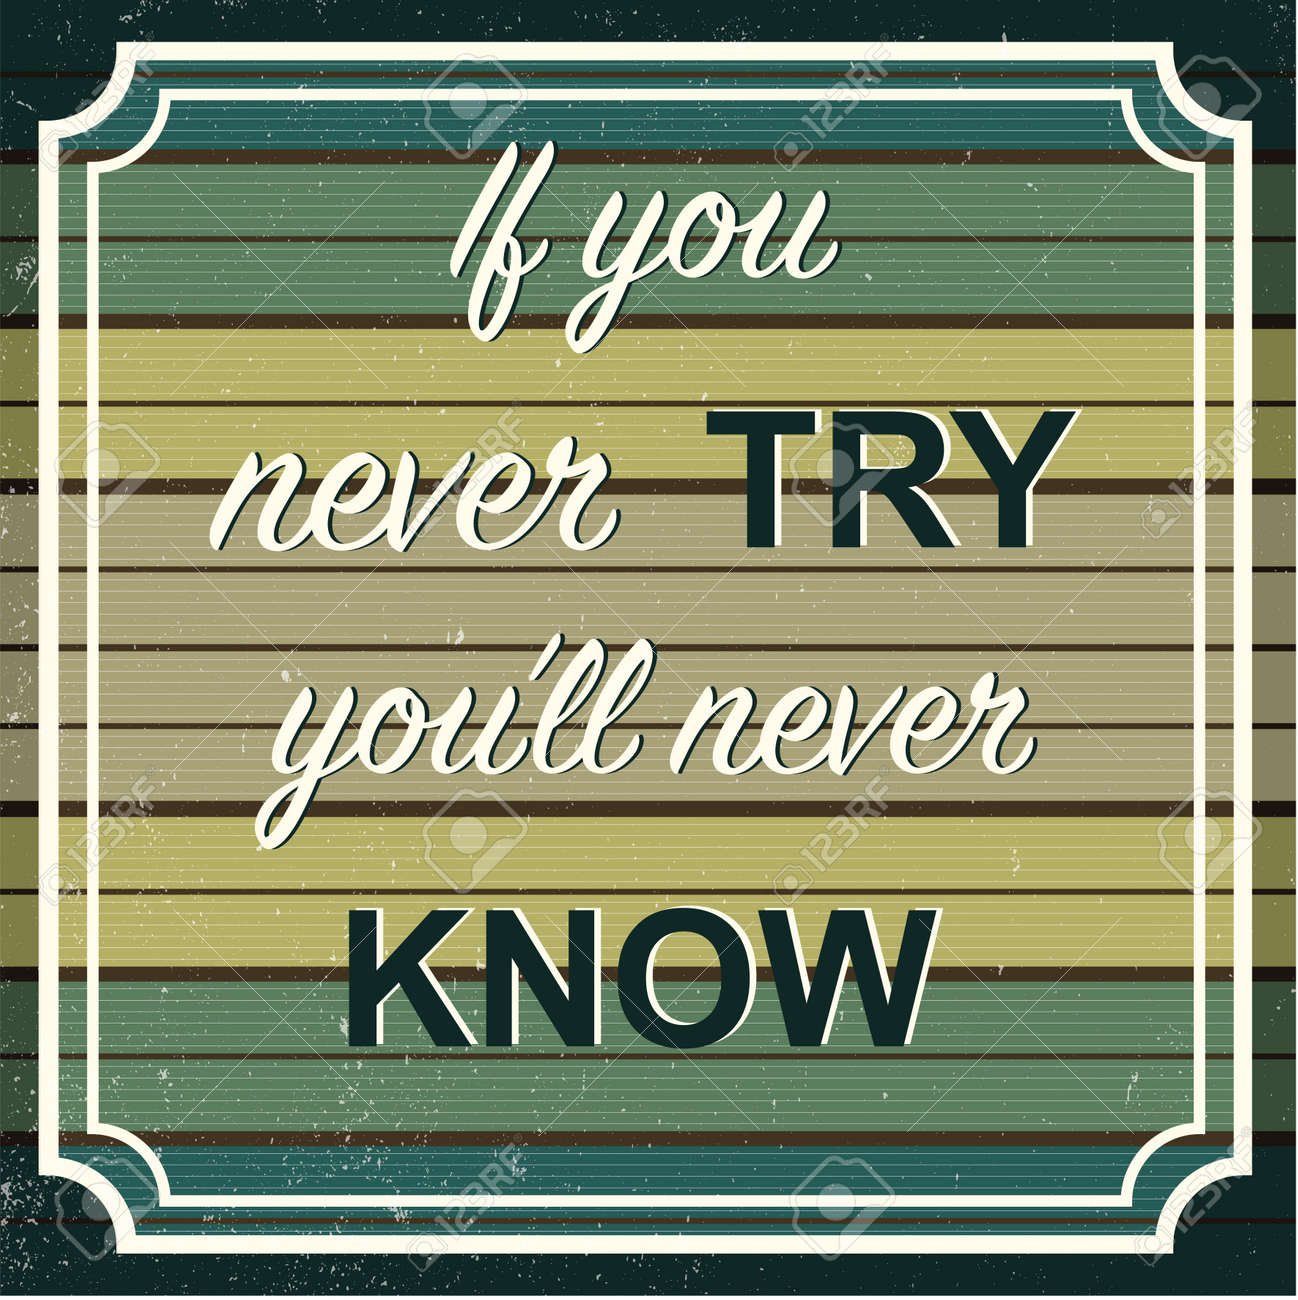 English motivation saying. Encouraging quotes. If you never try you'll never know. Vintage and retro background. Pastel colors. Print for t-shirts and posters. - 82070750